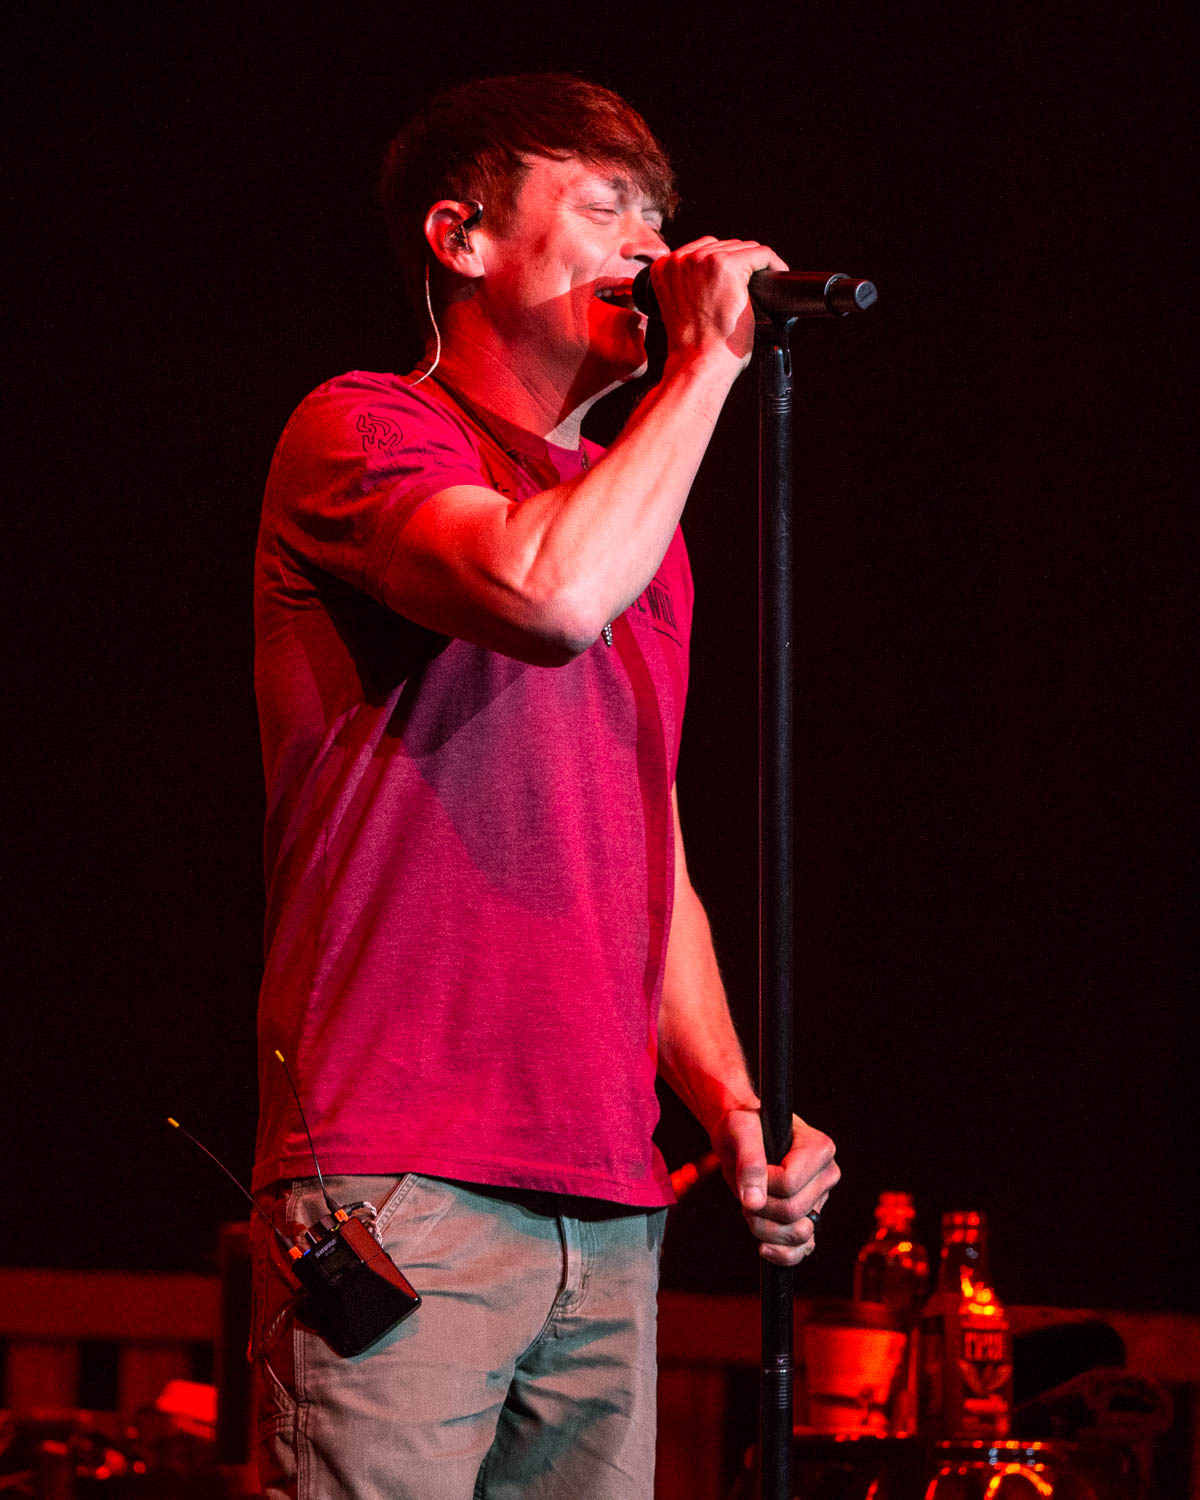 Brad Arnold, lead vocalist of 3 Doors Down